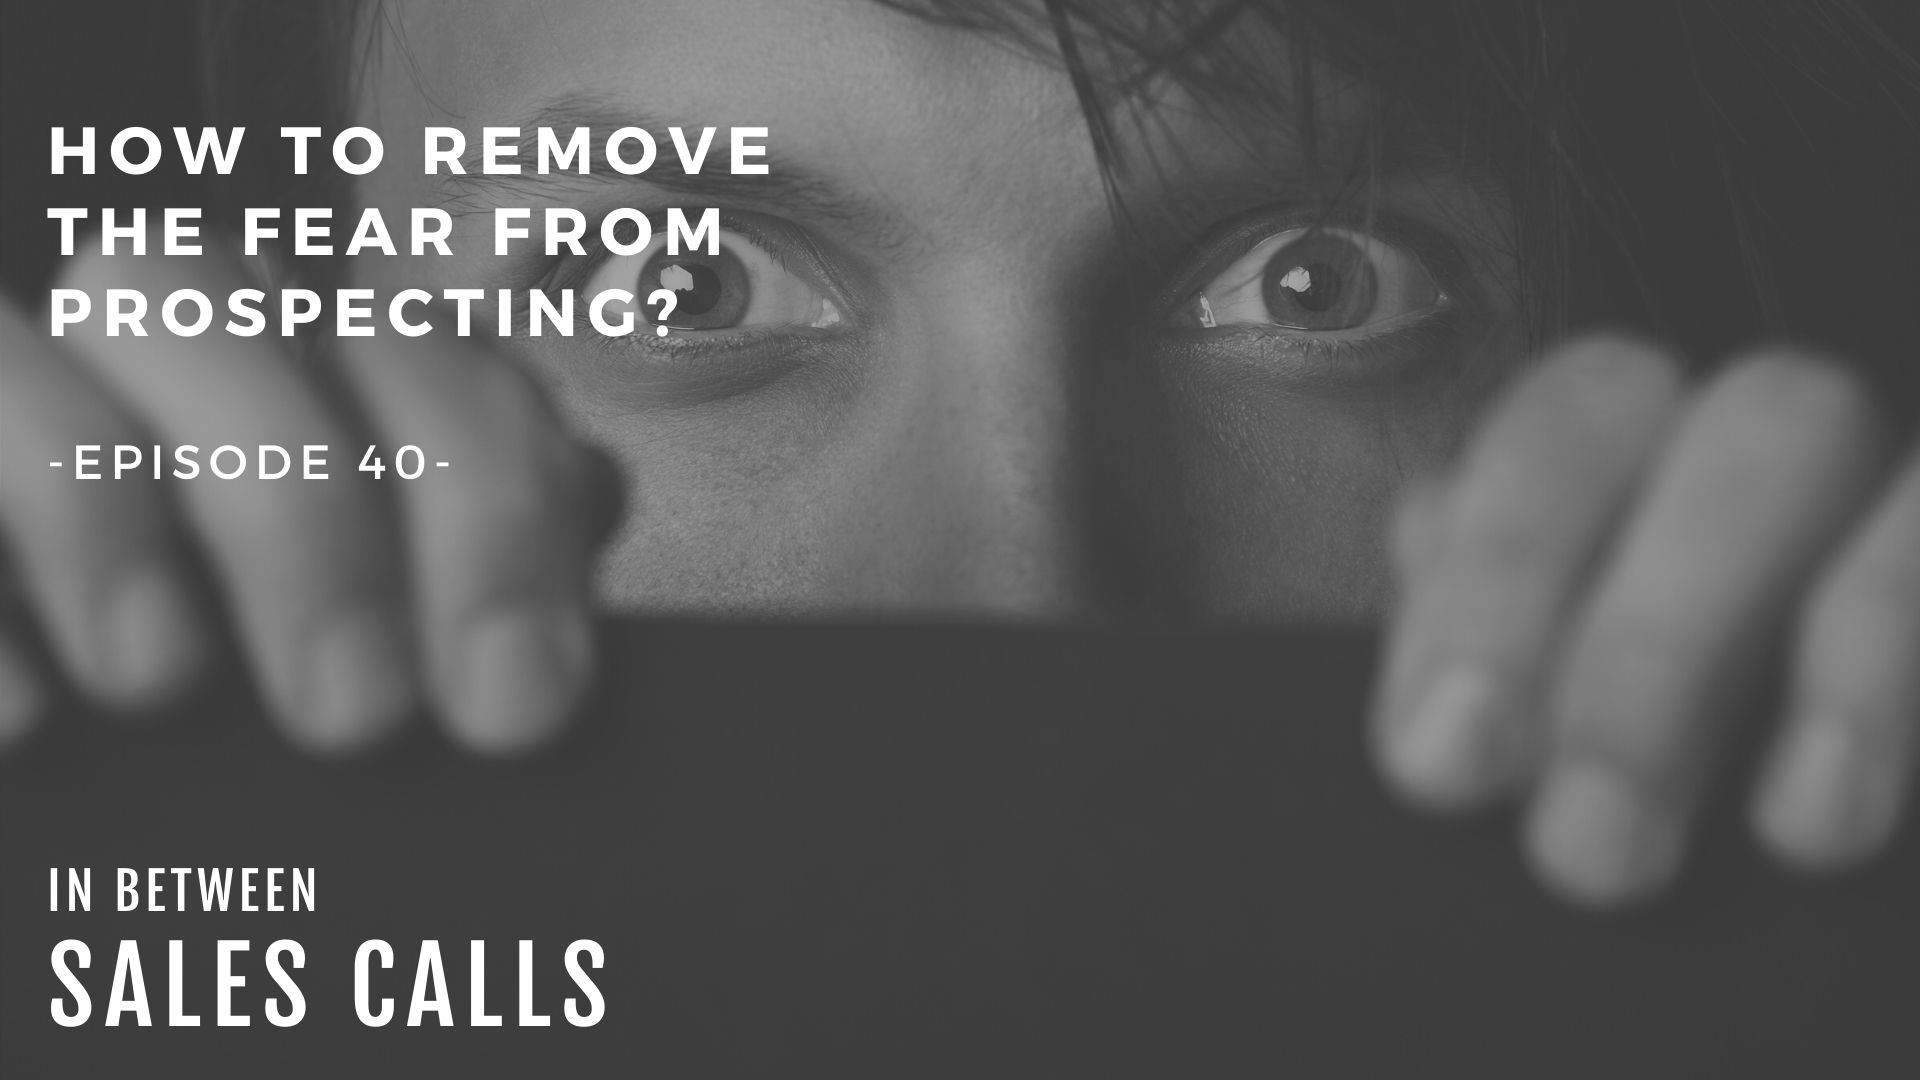 how-to-remove-the-fear-from-prospecting-modern-sales-training-in-between-sales-calls-podcast